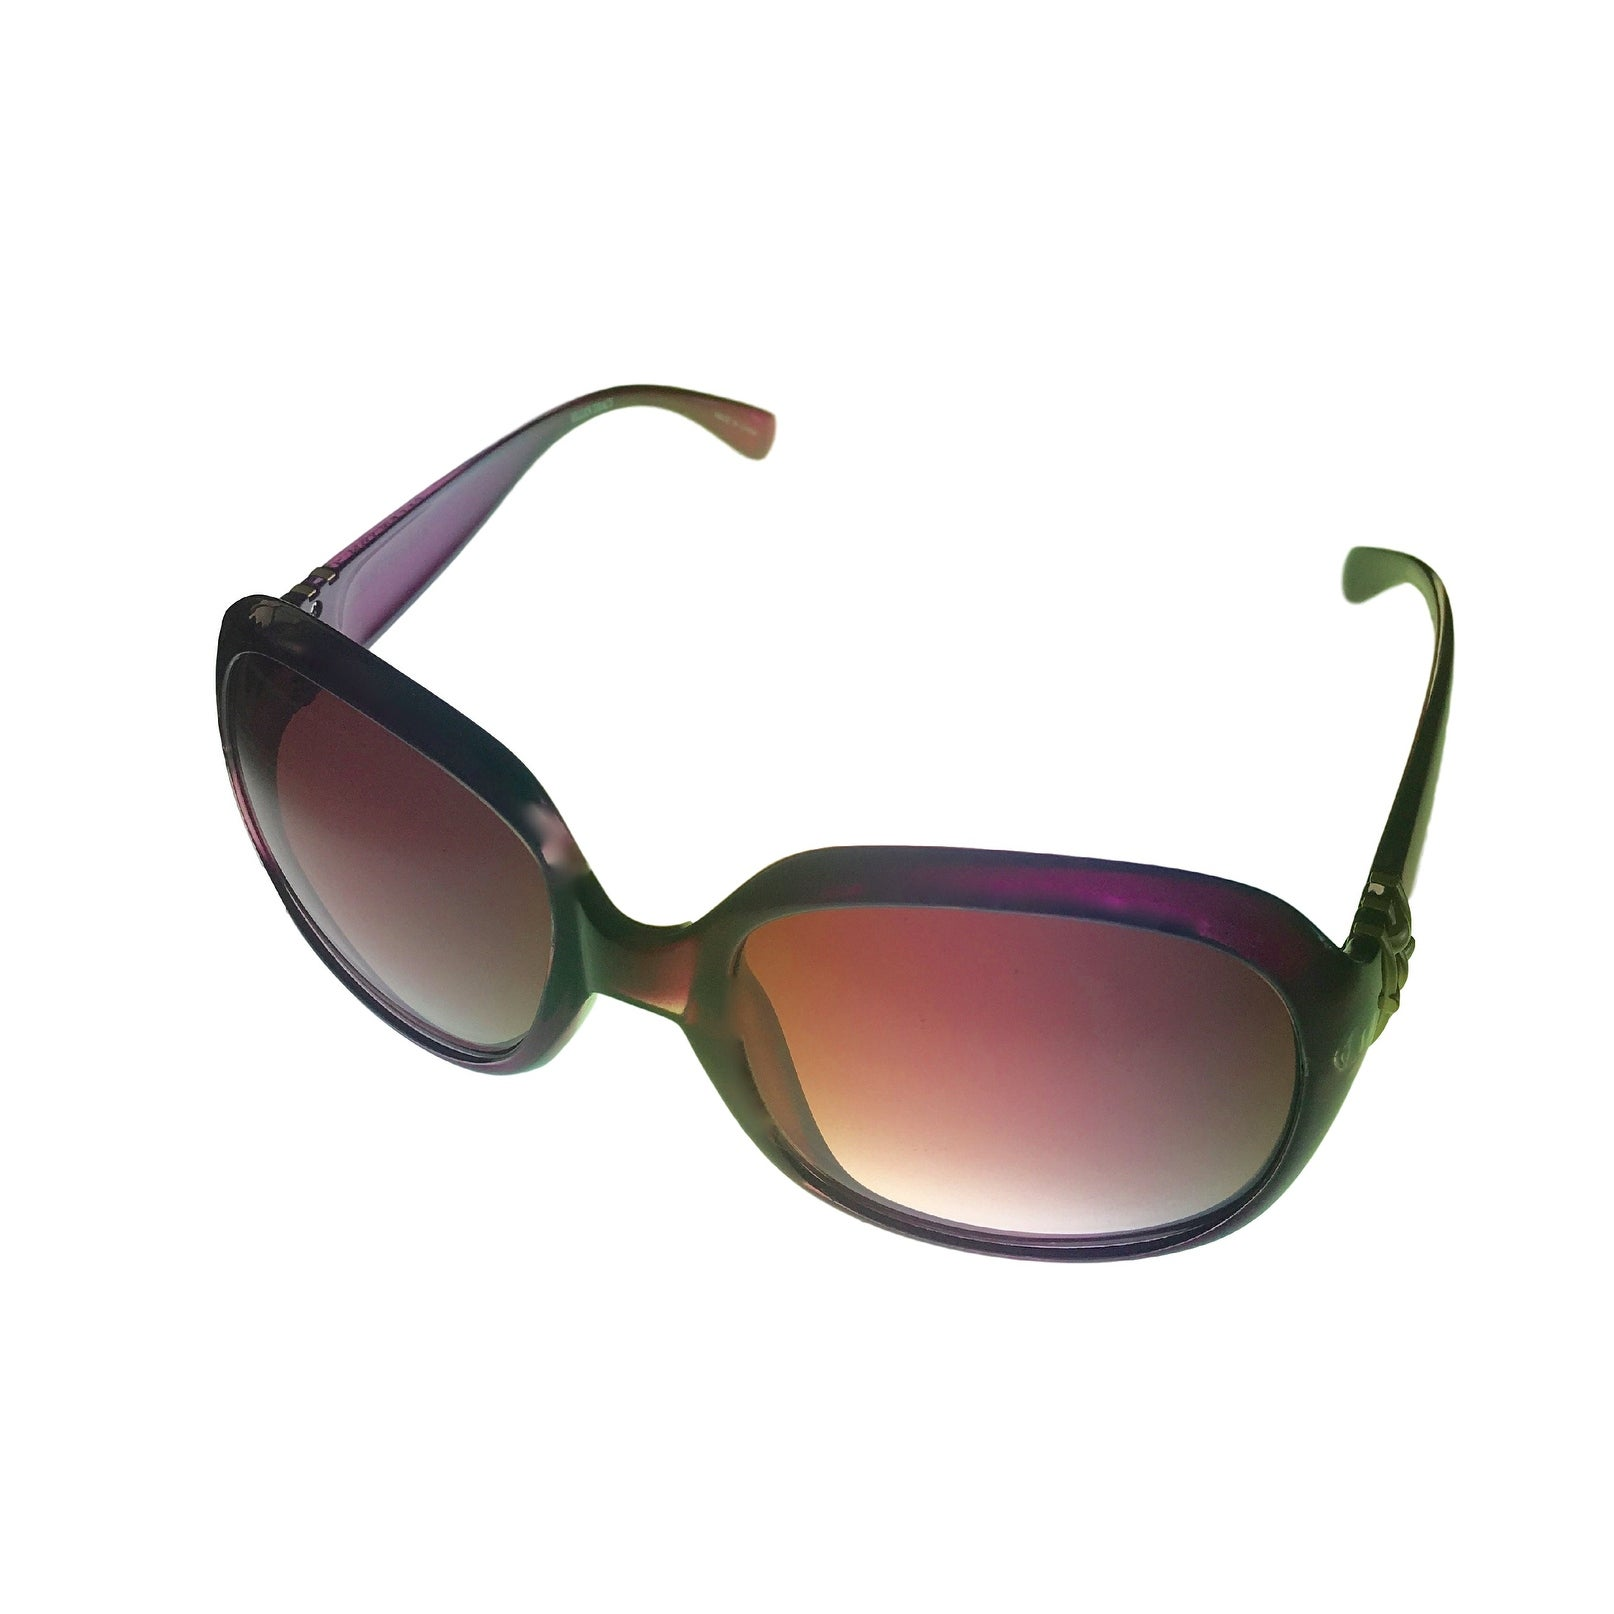 Ellen Tracy Womens Sunglass 513 3 Purple Square Plastic,Gradient Lens - Thumbnail 0